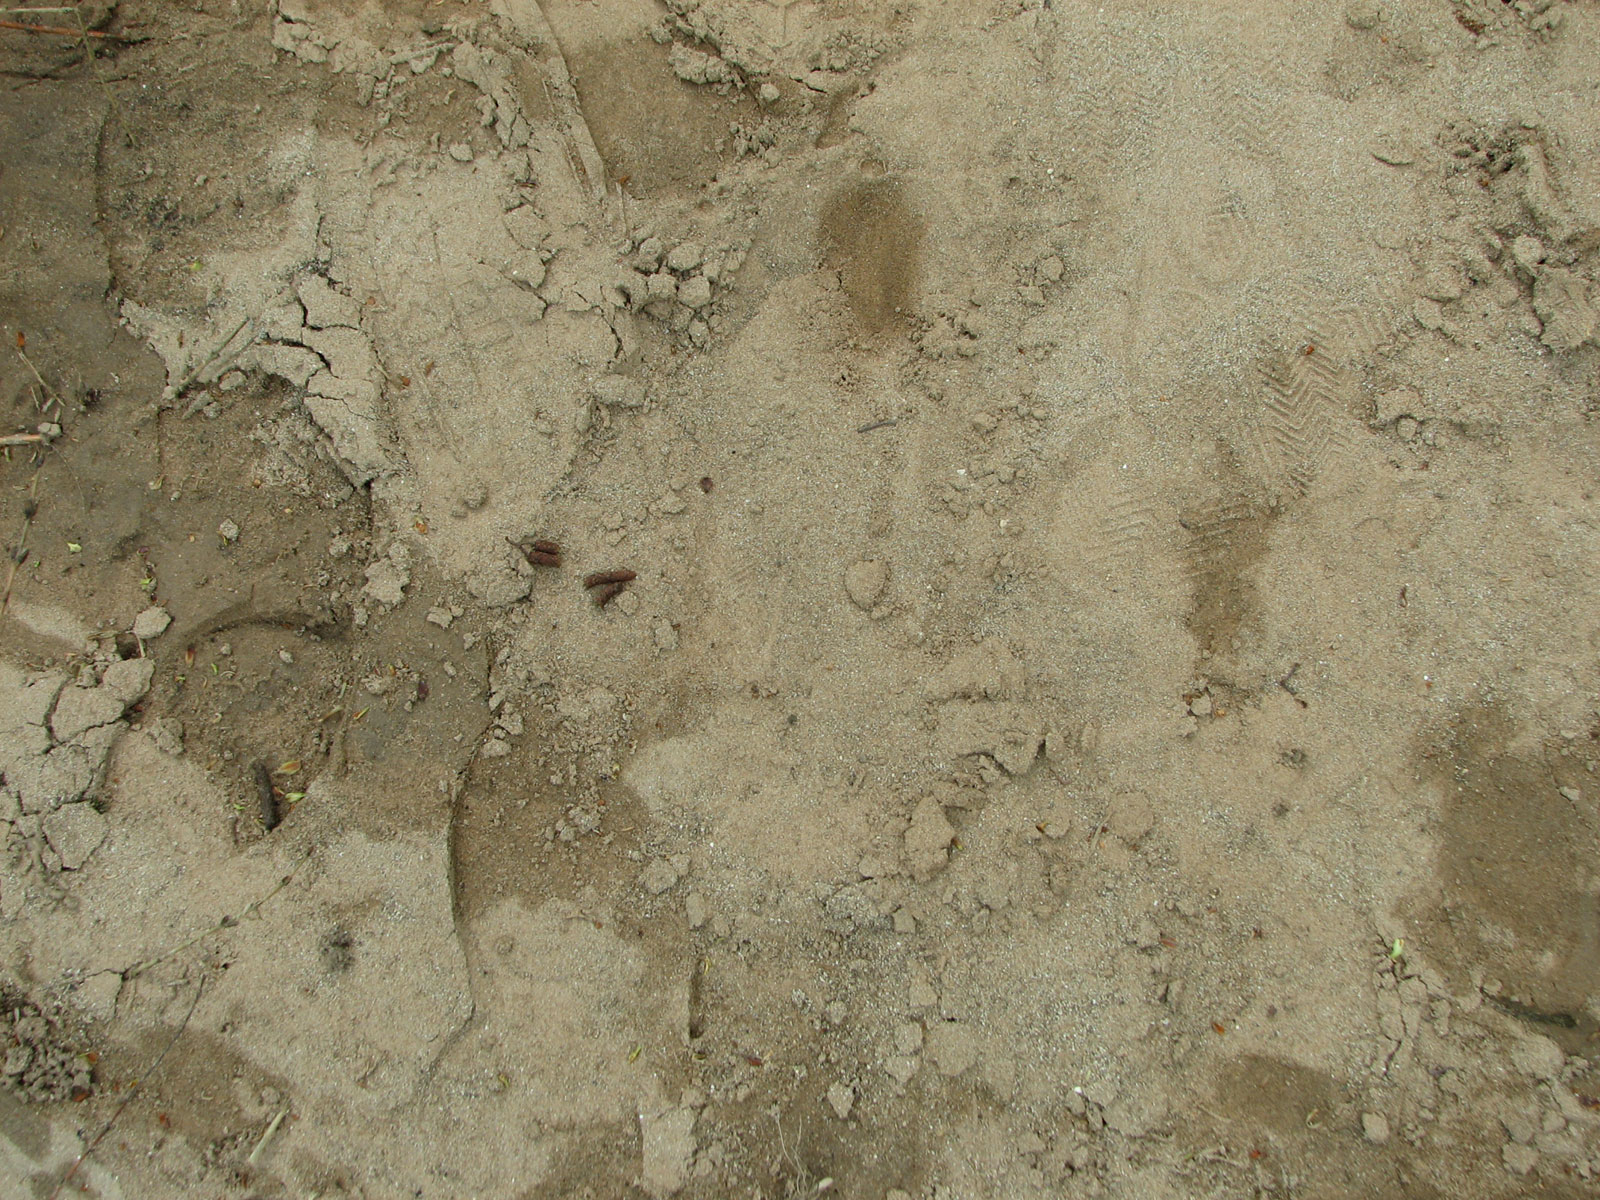 Sand-tracks-01 by